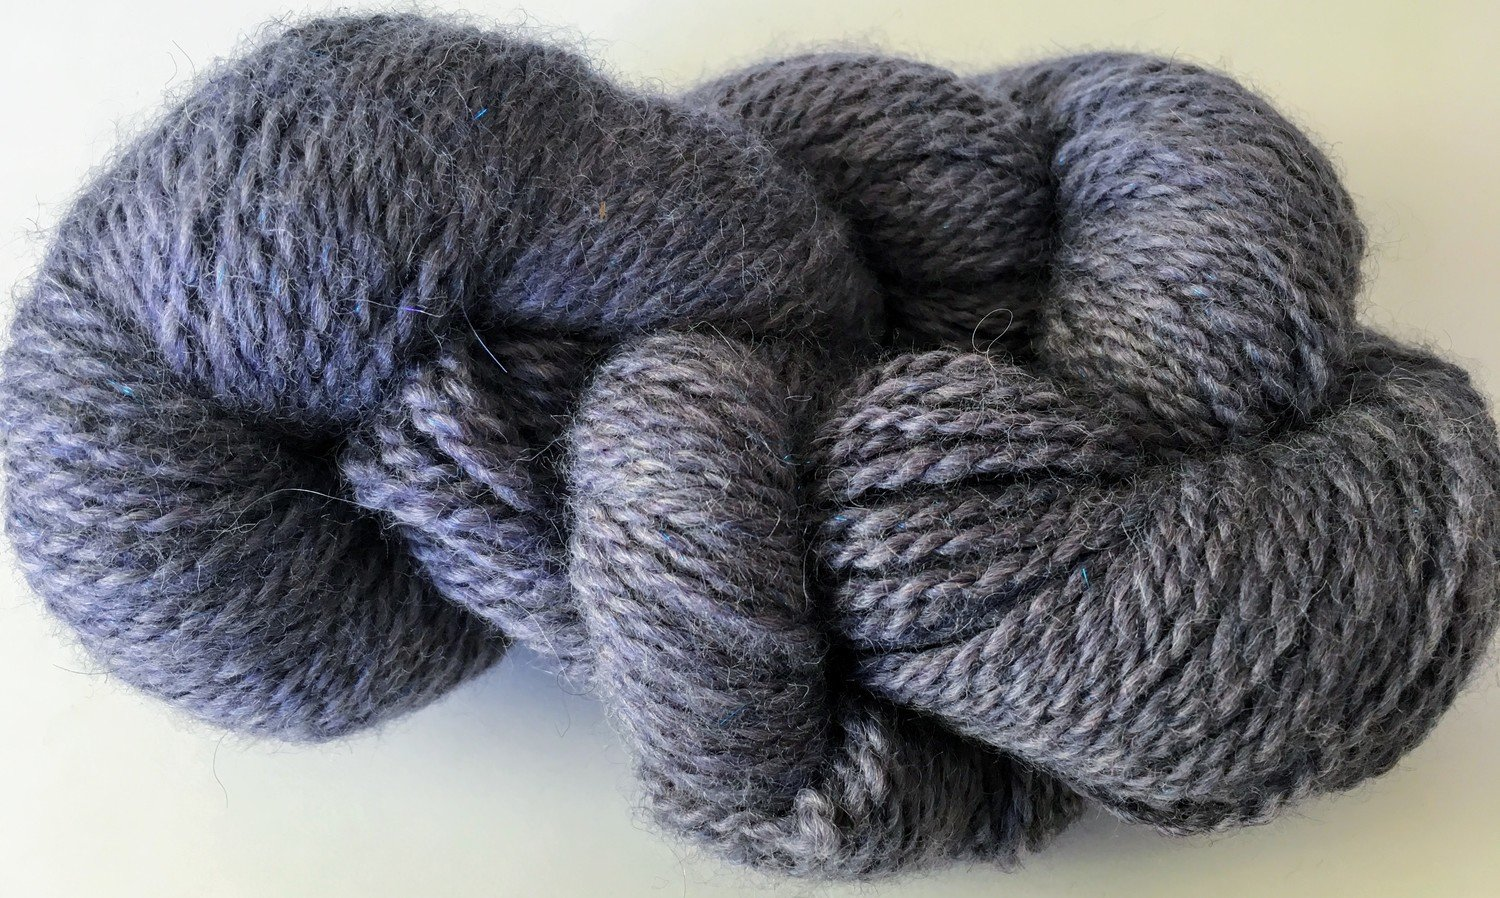 Breezy Hill Cottage-Milled, Hand-Dyed Yarn - Lavender